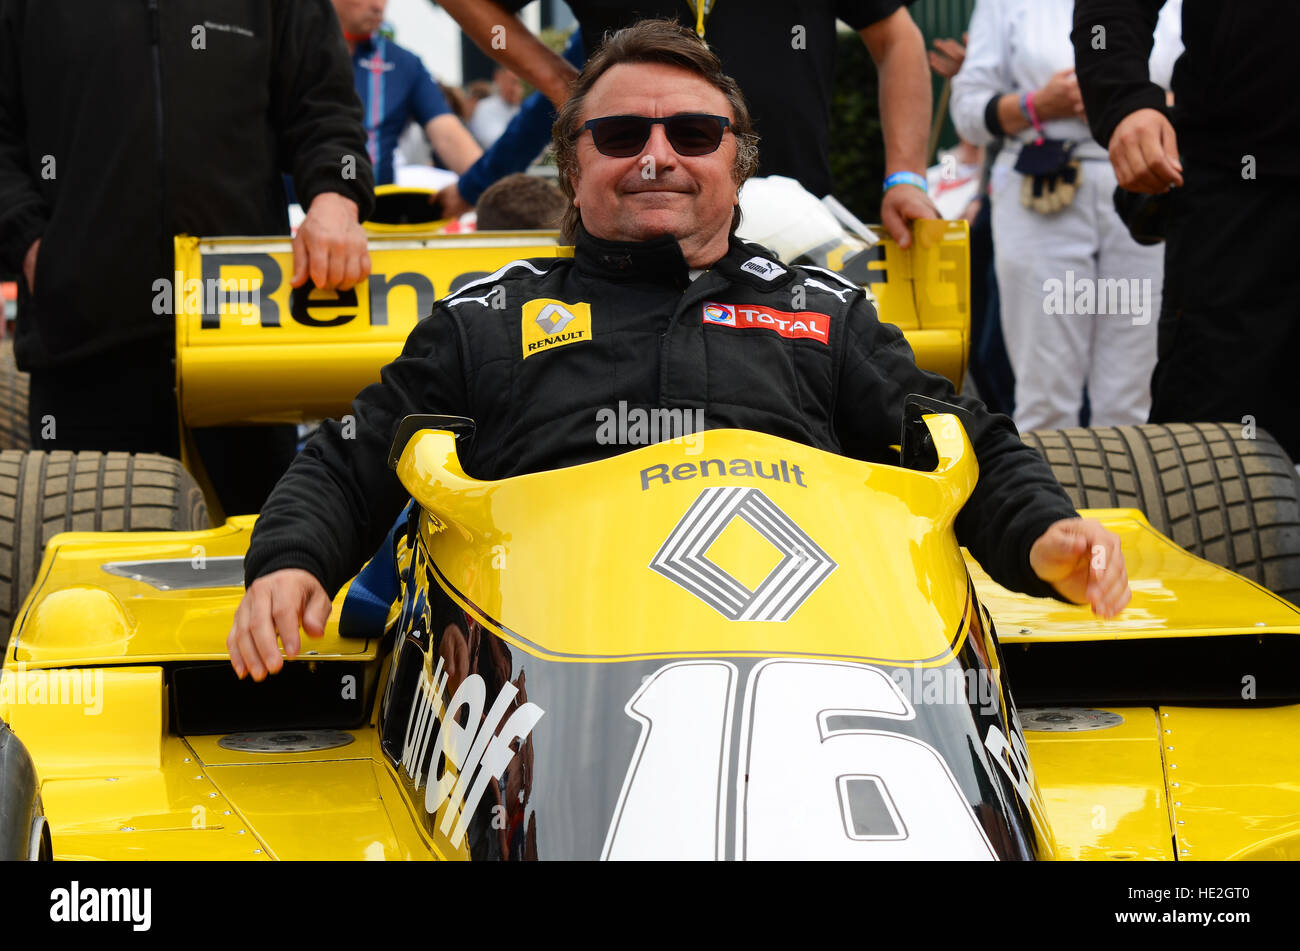 René Arnoux is a French former racing driver who competed in 12 Formula One seasons (1978 to 1989). - Stock Image